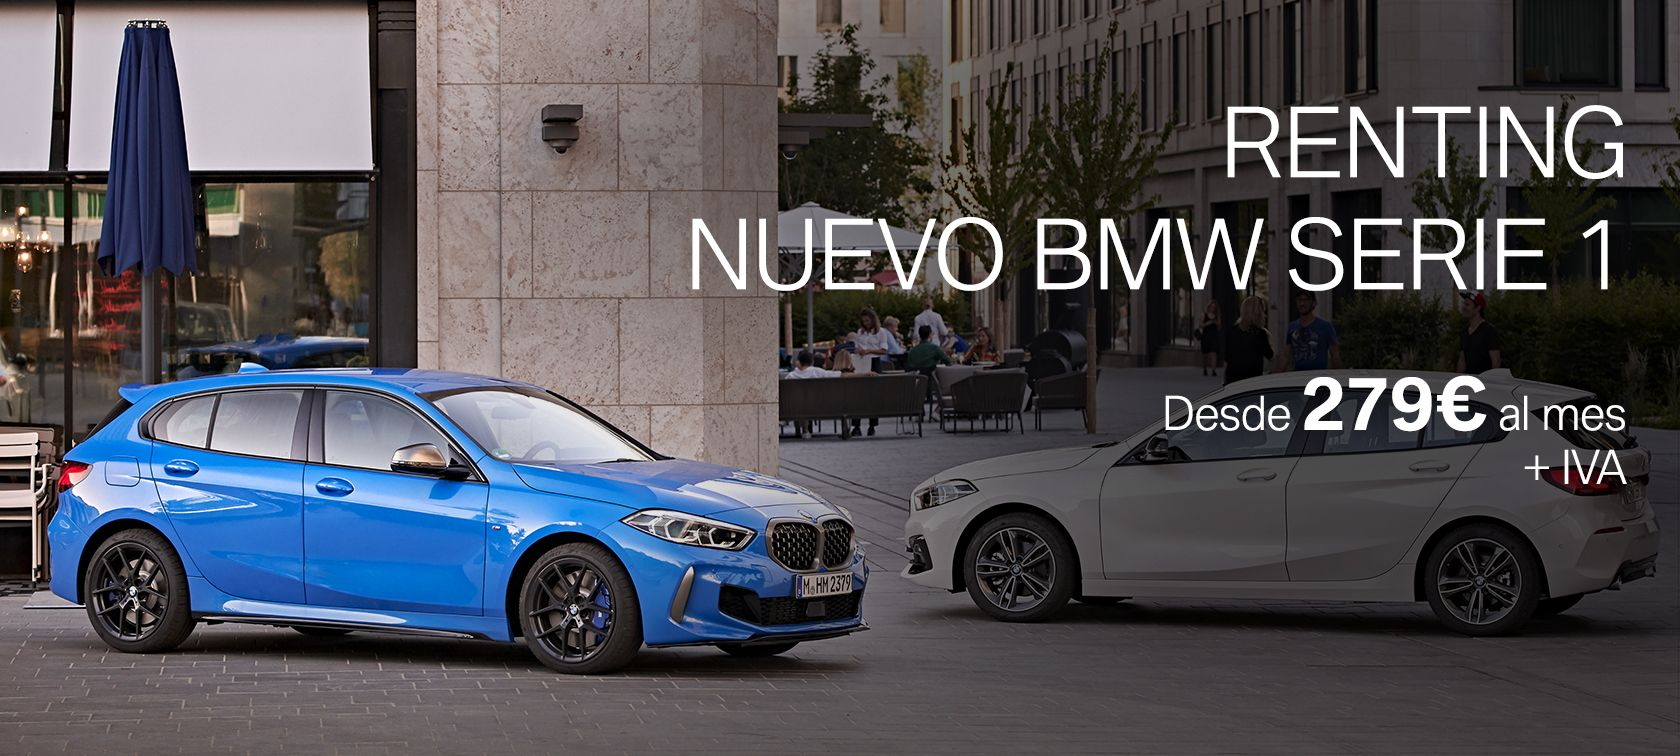 Renting Nuevo BMW Serie 1